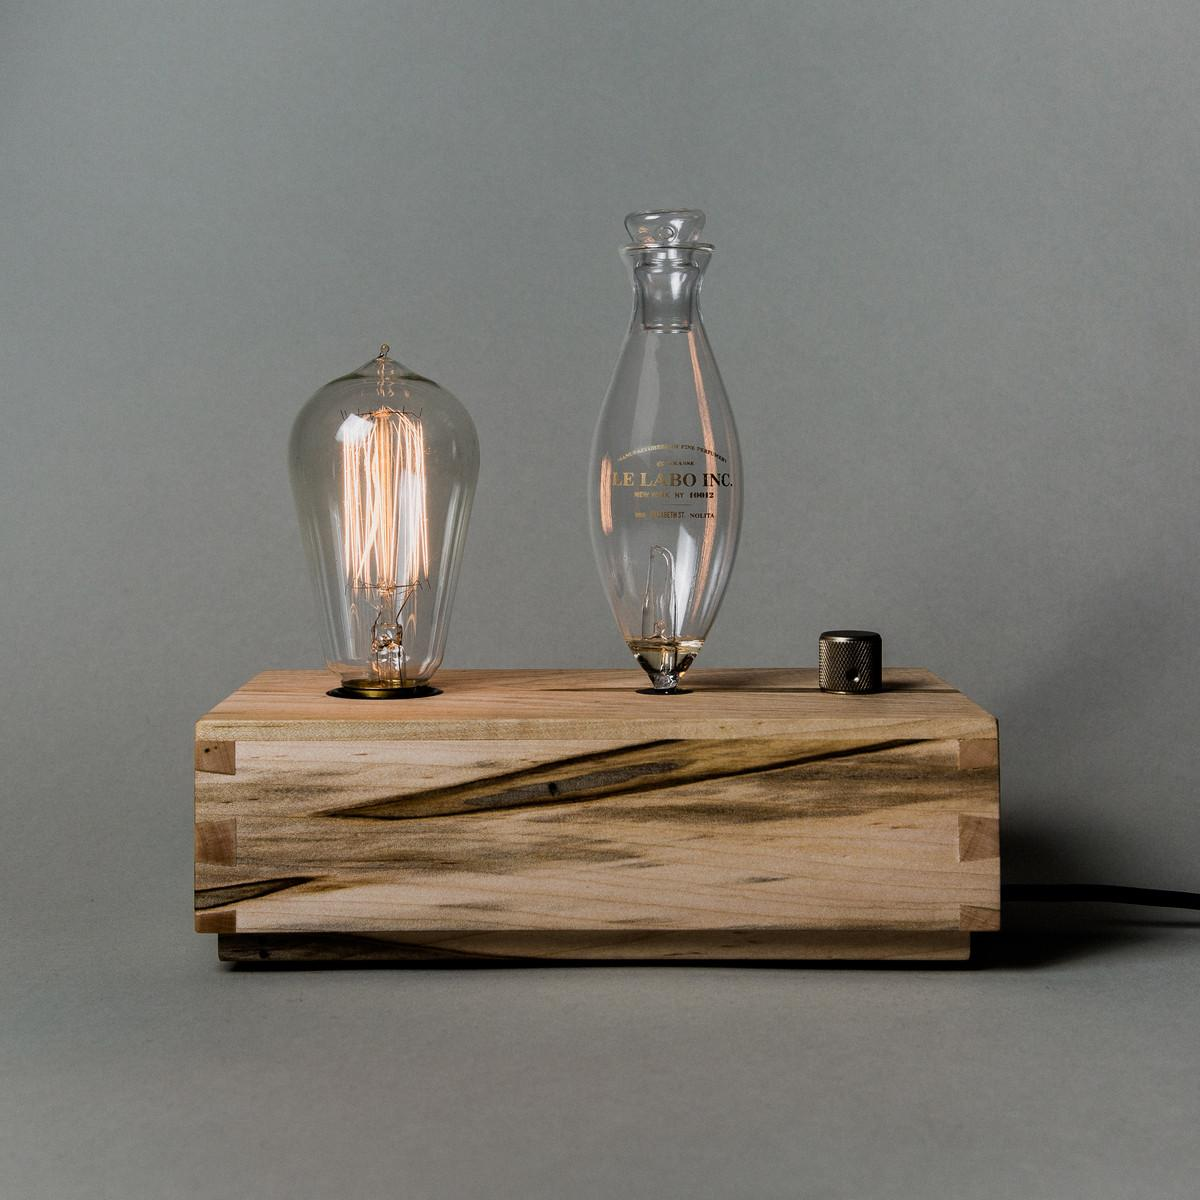 SANTAL 26 home diffuser, $600 @lelabofragrances.com